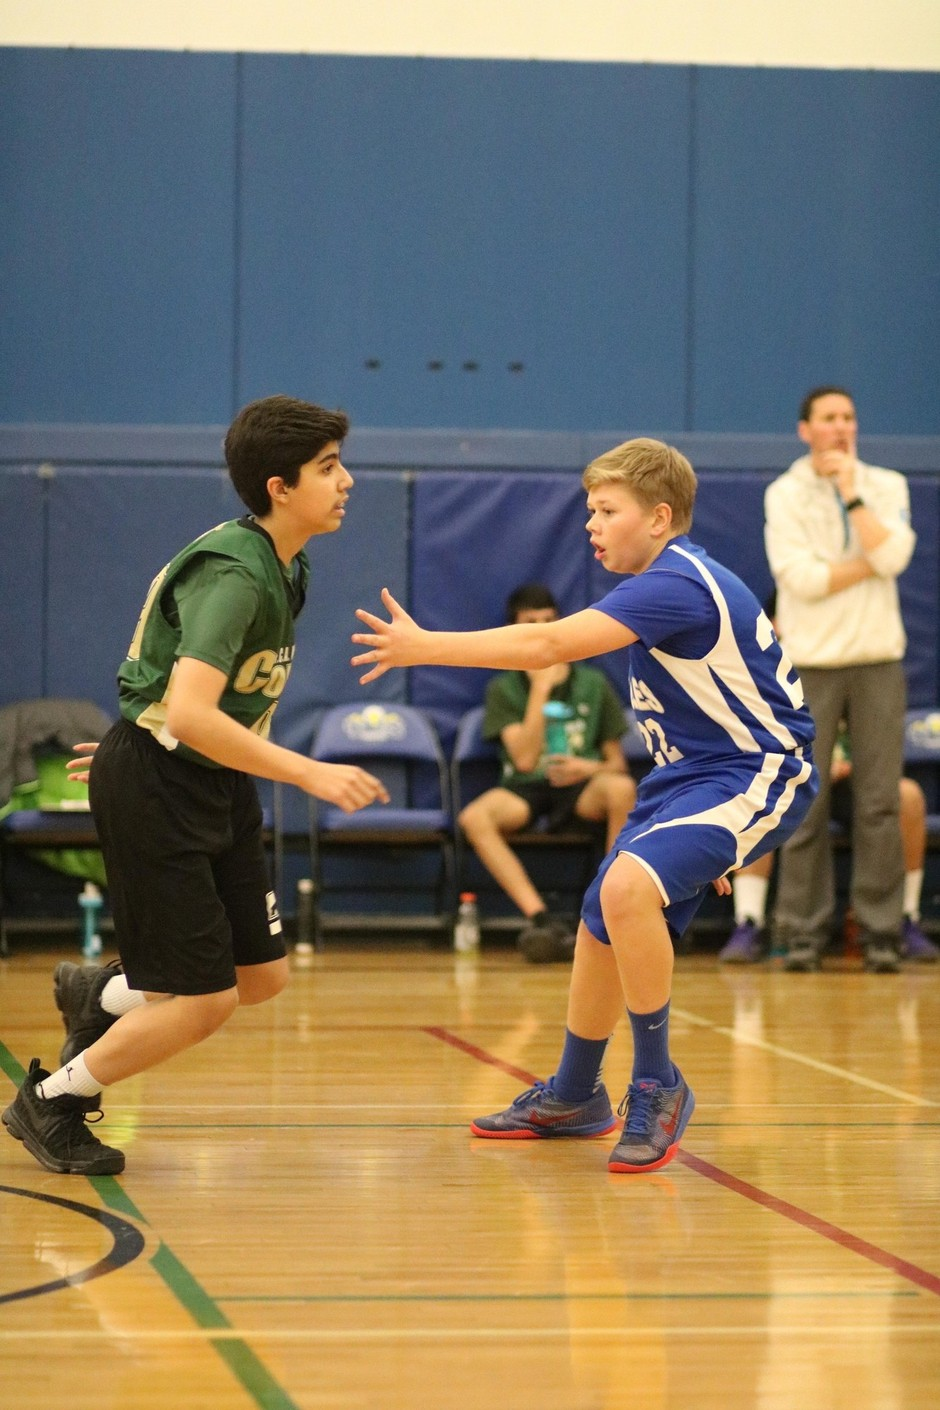 grade 8 boys record another win